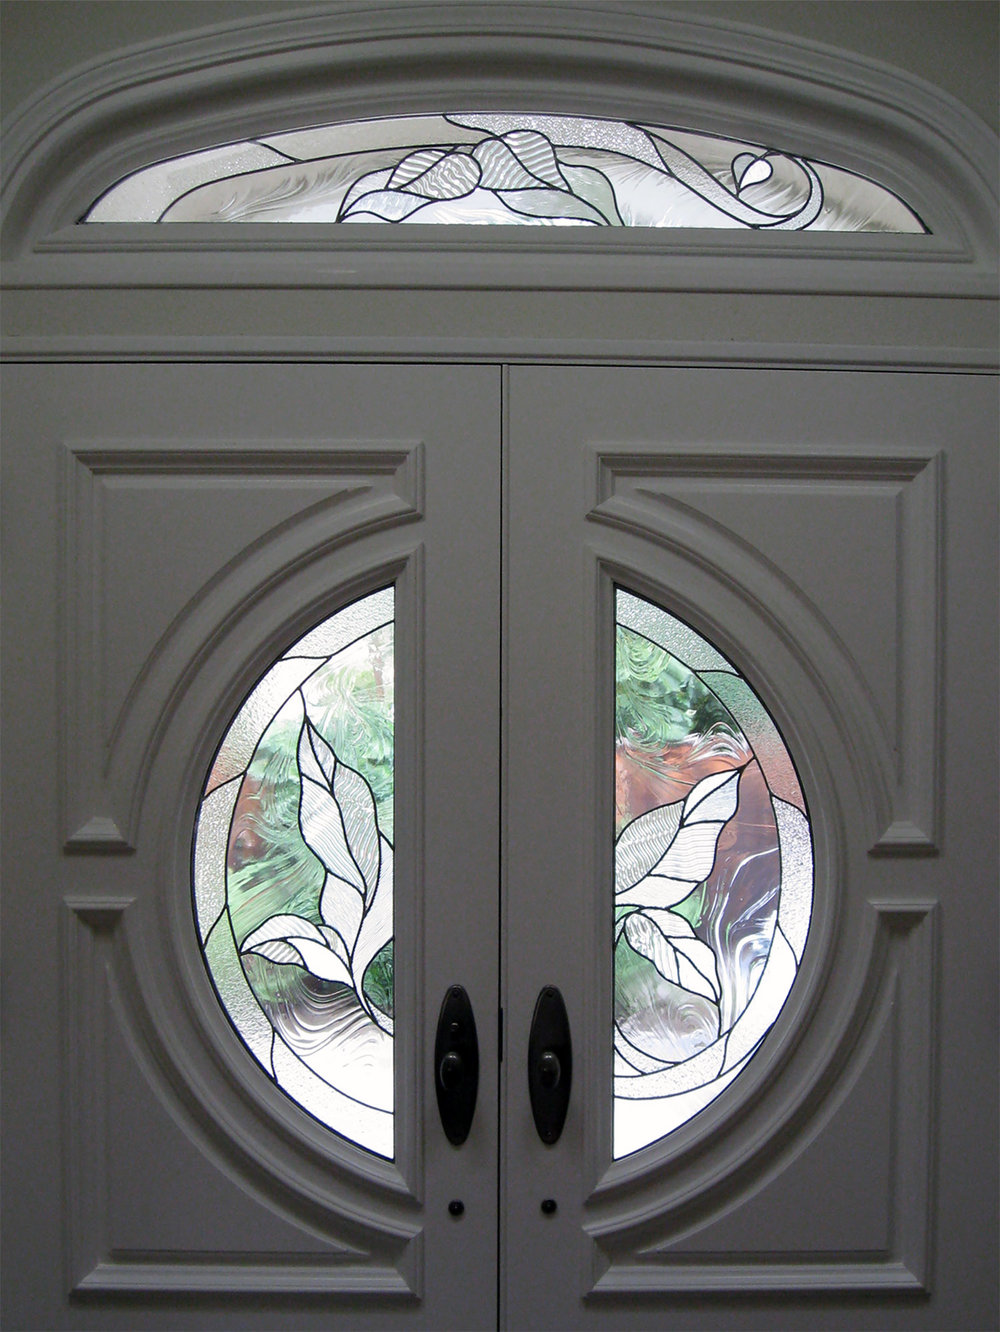 leaf circle door baroque clear texture leaded glass stained glass window palo alto atherton california san francisco san jose legacy glass.jpg